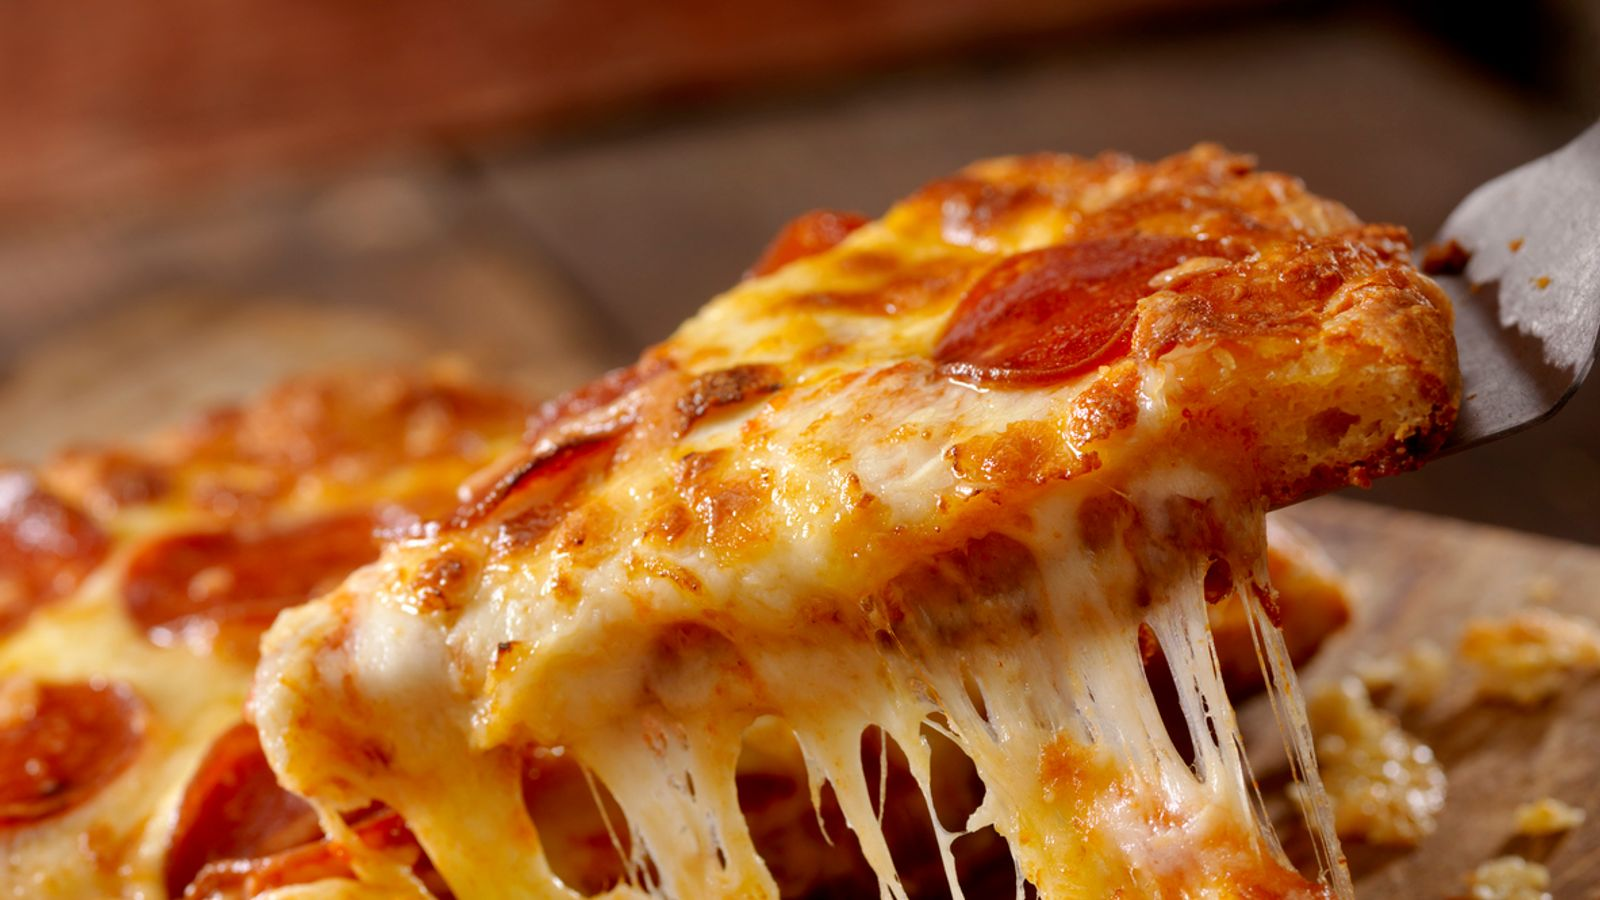 Students 'binged on pizzas and burgers to avoid military service in South Korea'